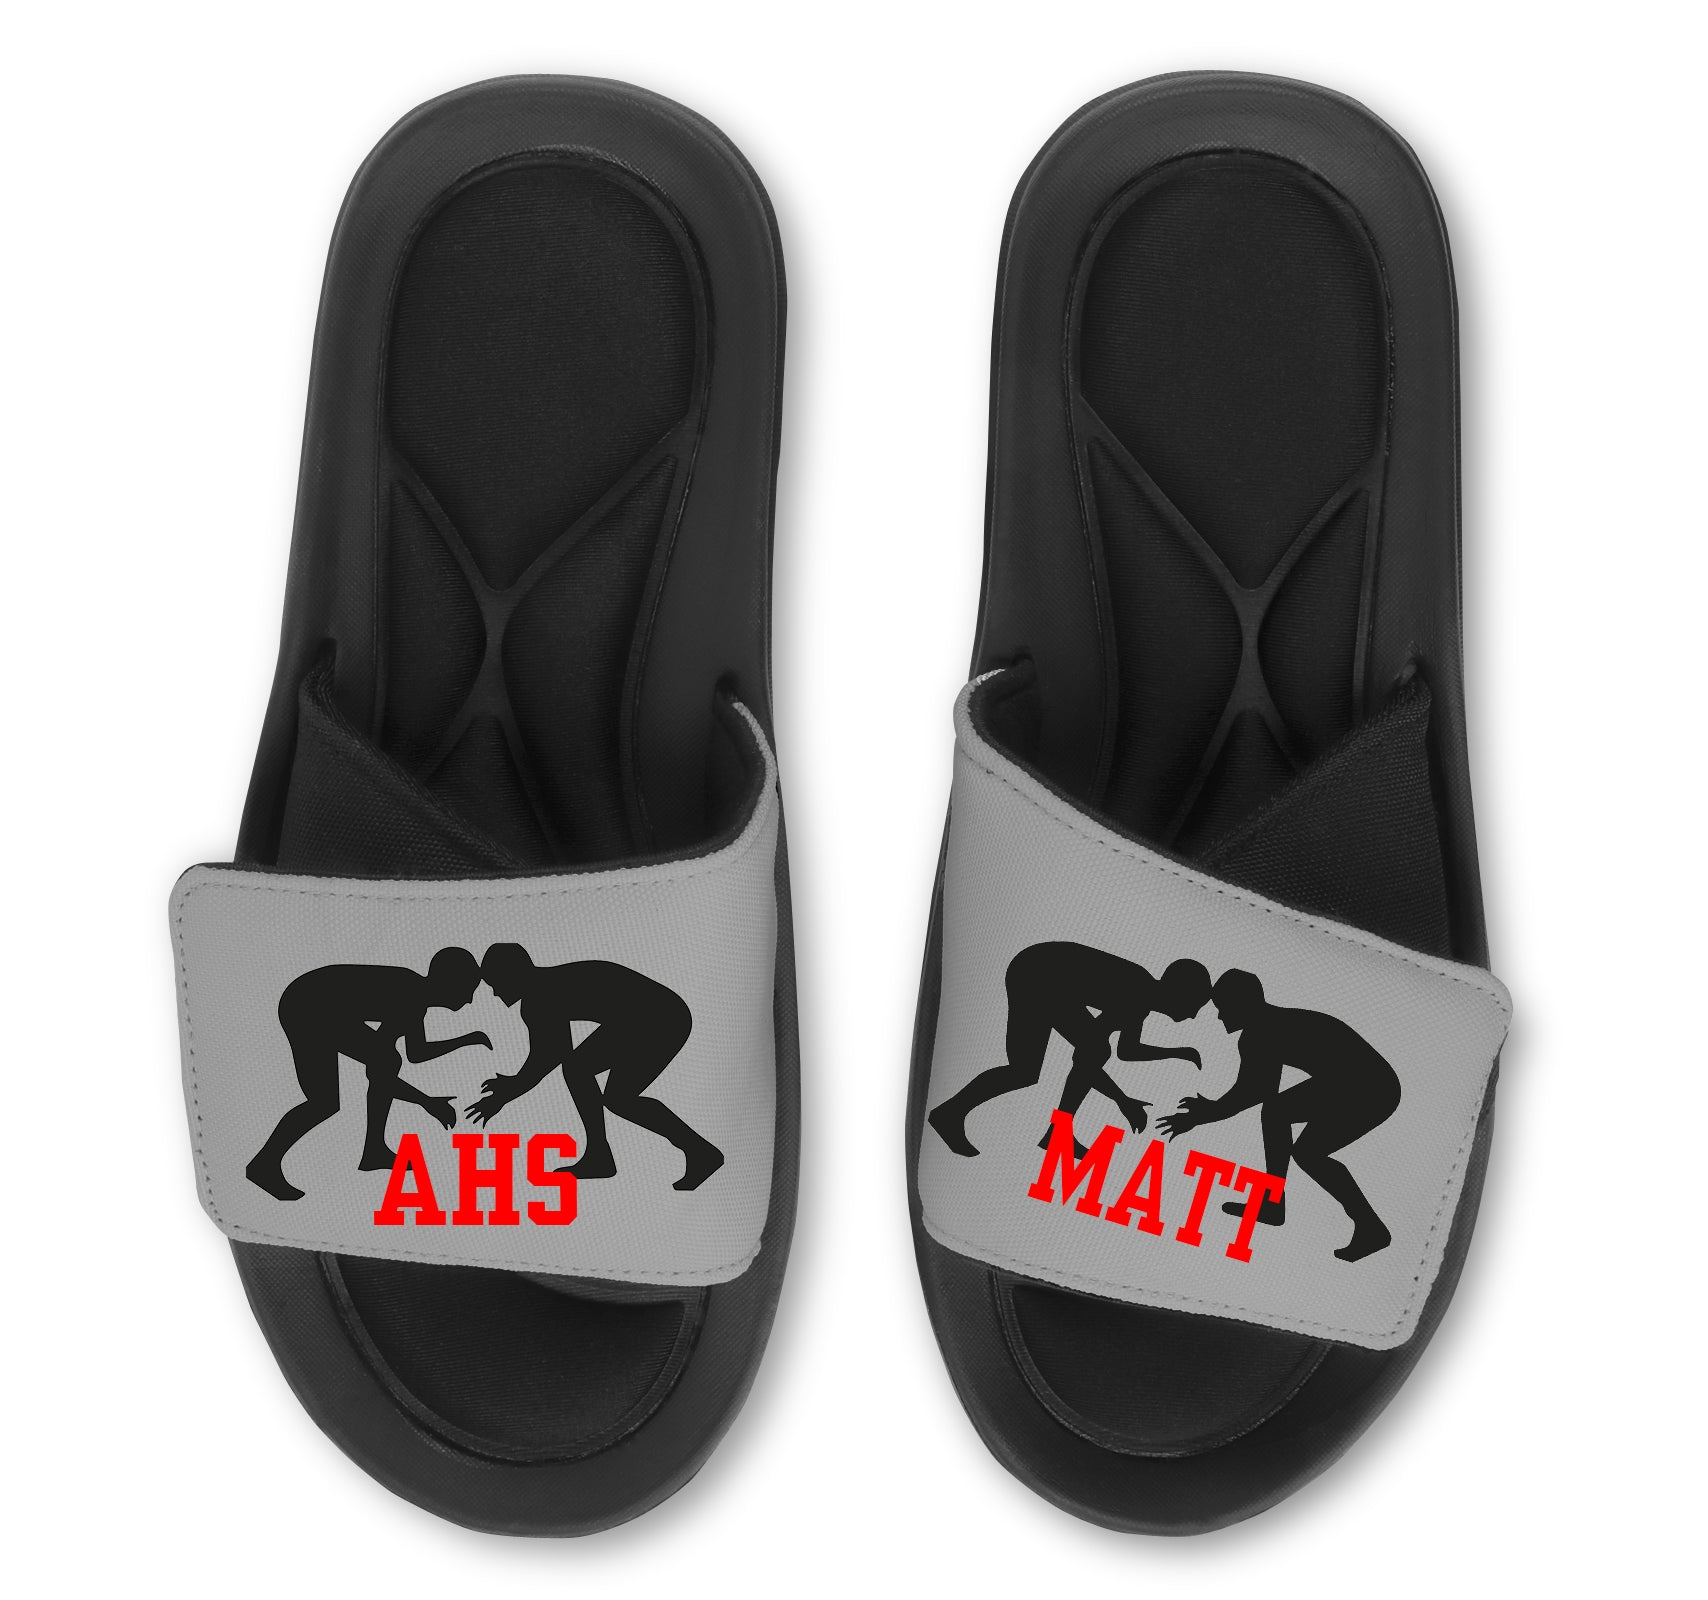 Wrestling Custom Slides / Sandals - Choose Your Colors